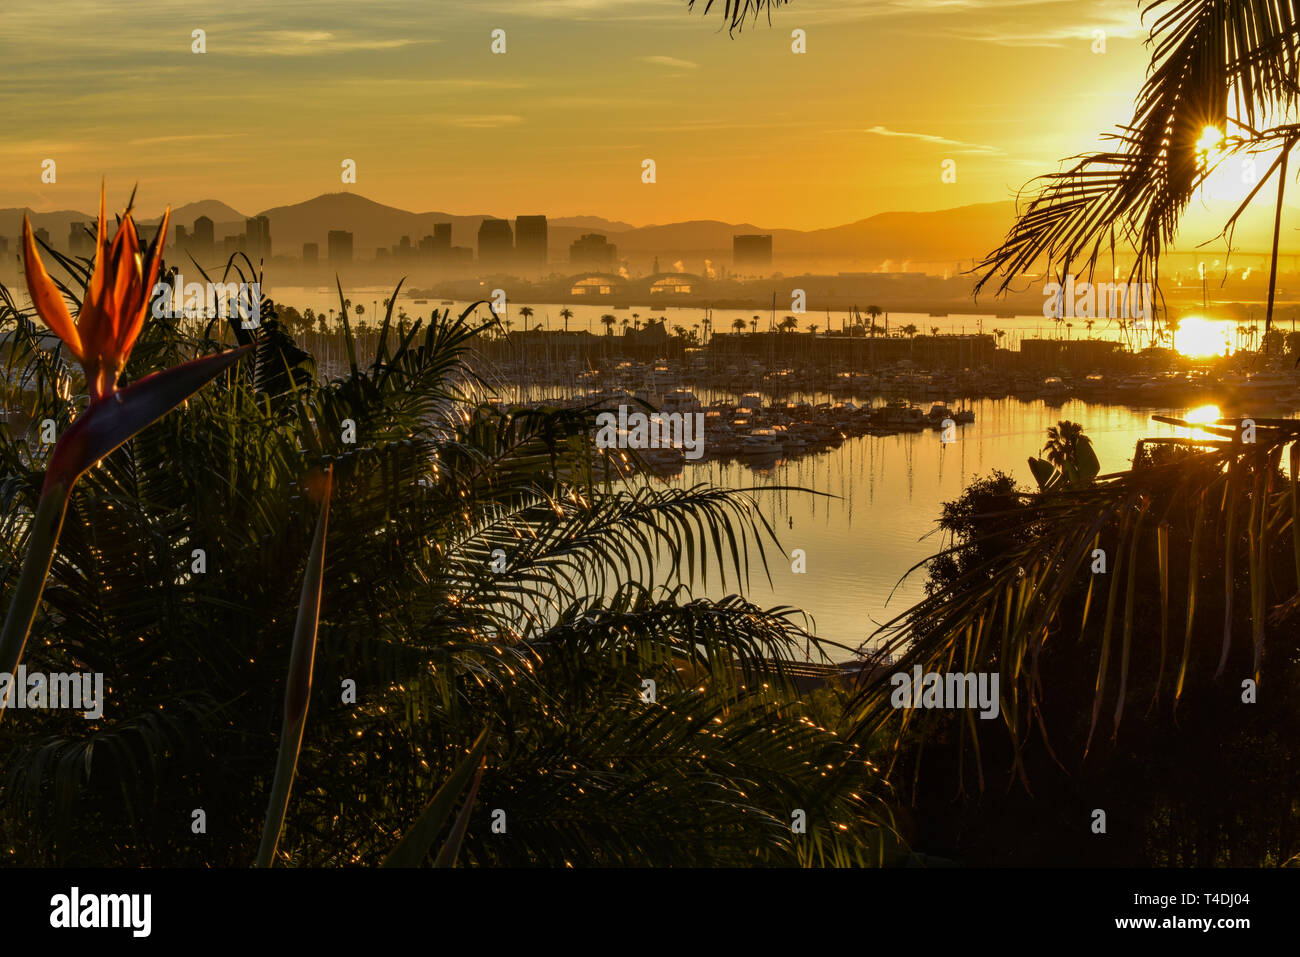 Calm bright sunrise over the San Diego skyline, with North San Diego Bay and docked sailboats off Shelter Island, California, USA Stock Photo